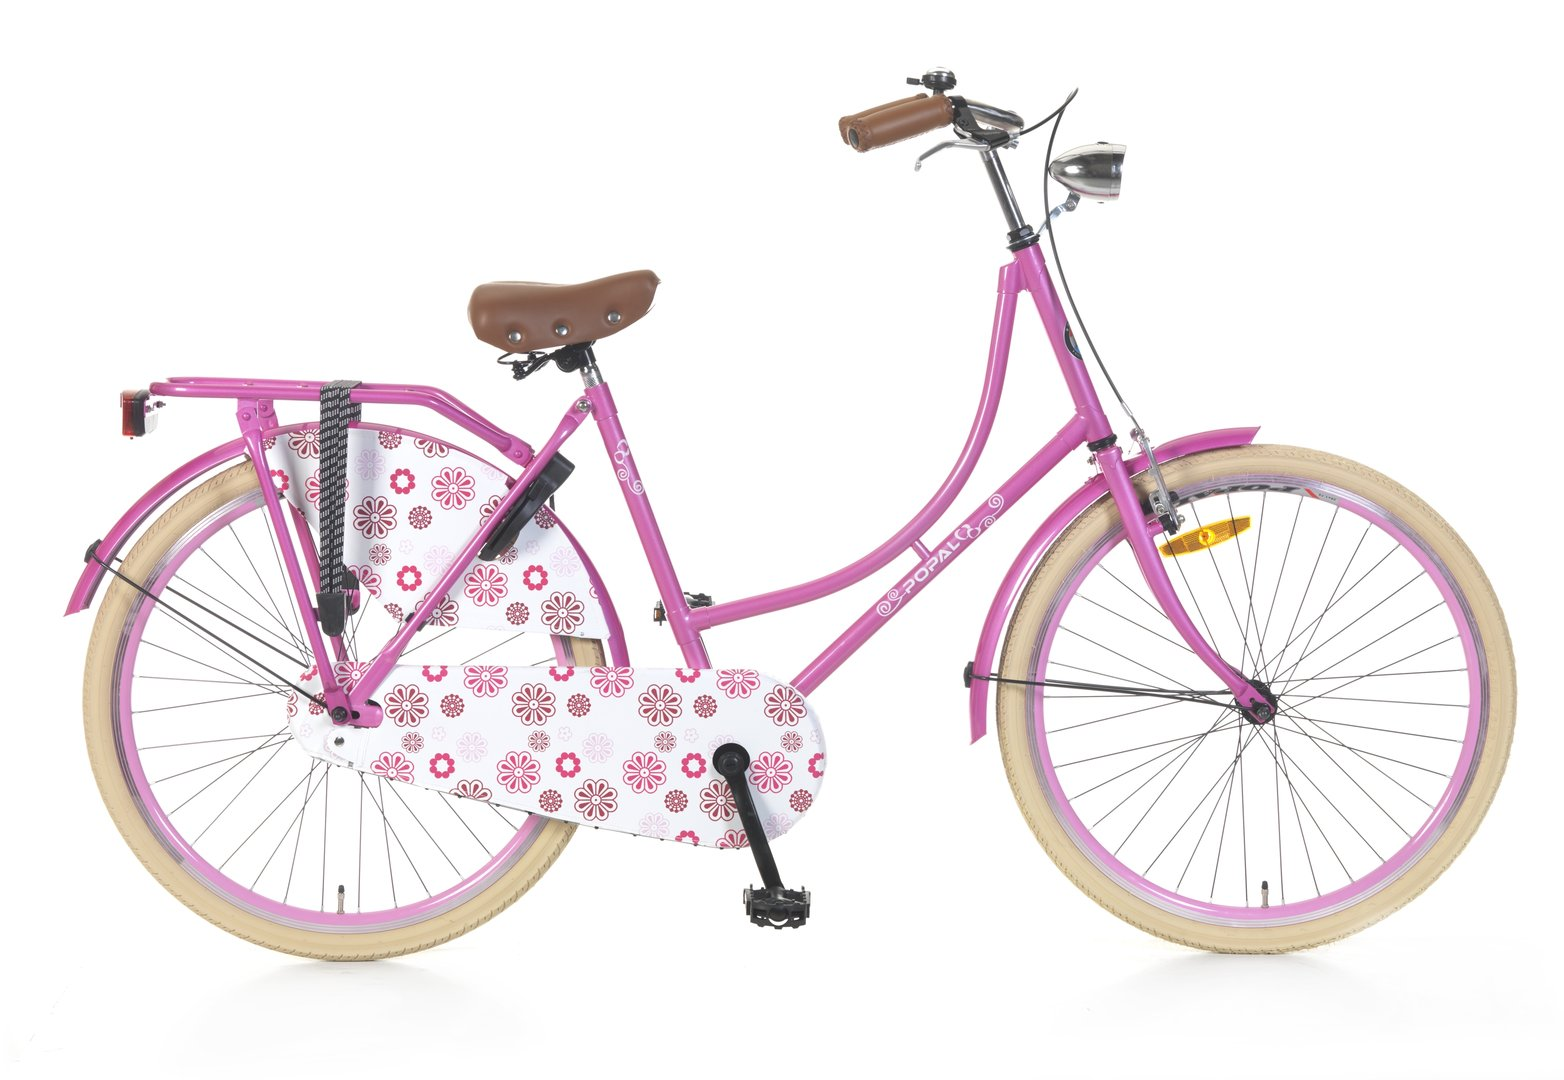 26 zoll hollandrad rosa mit blumen fahrrad ass. Black Bedroom Furniture Sets. Home Design Ideas